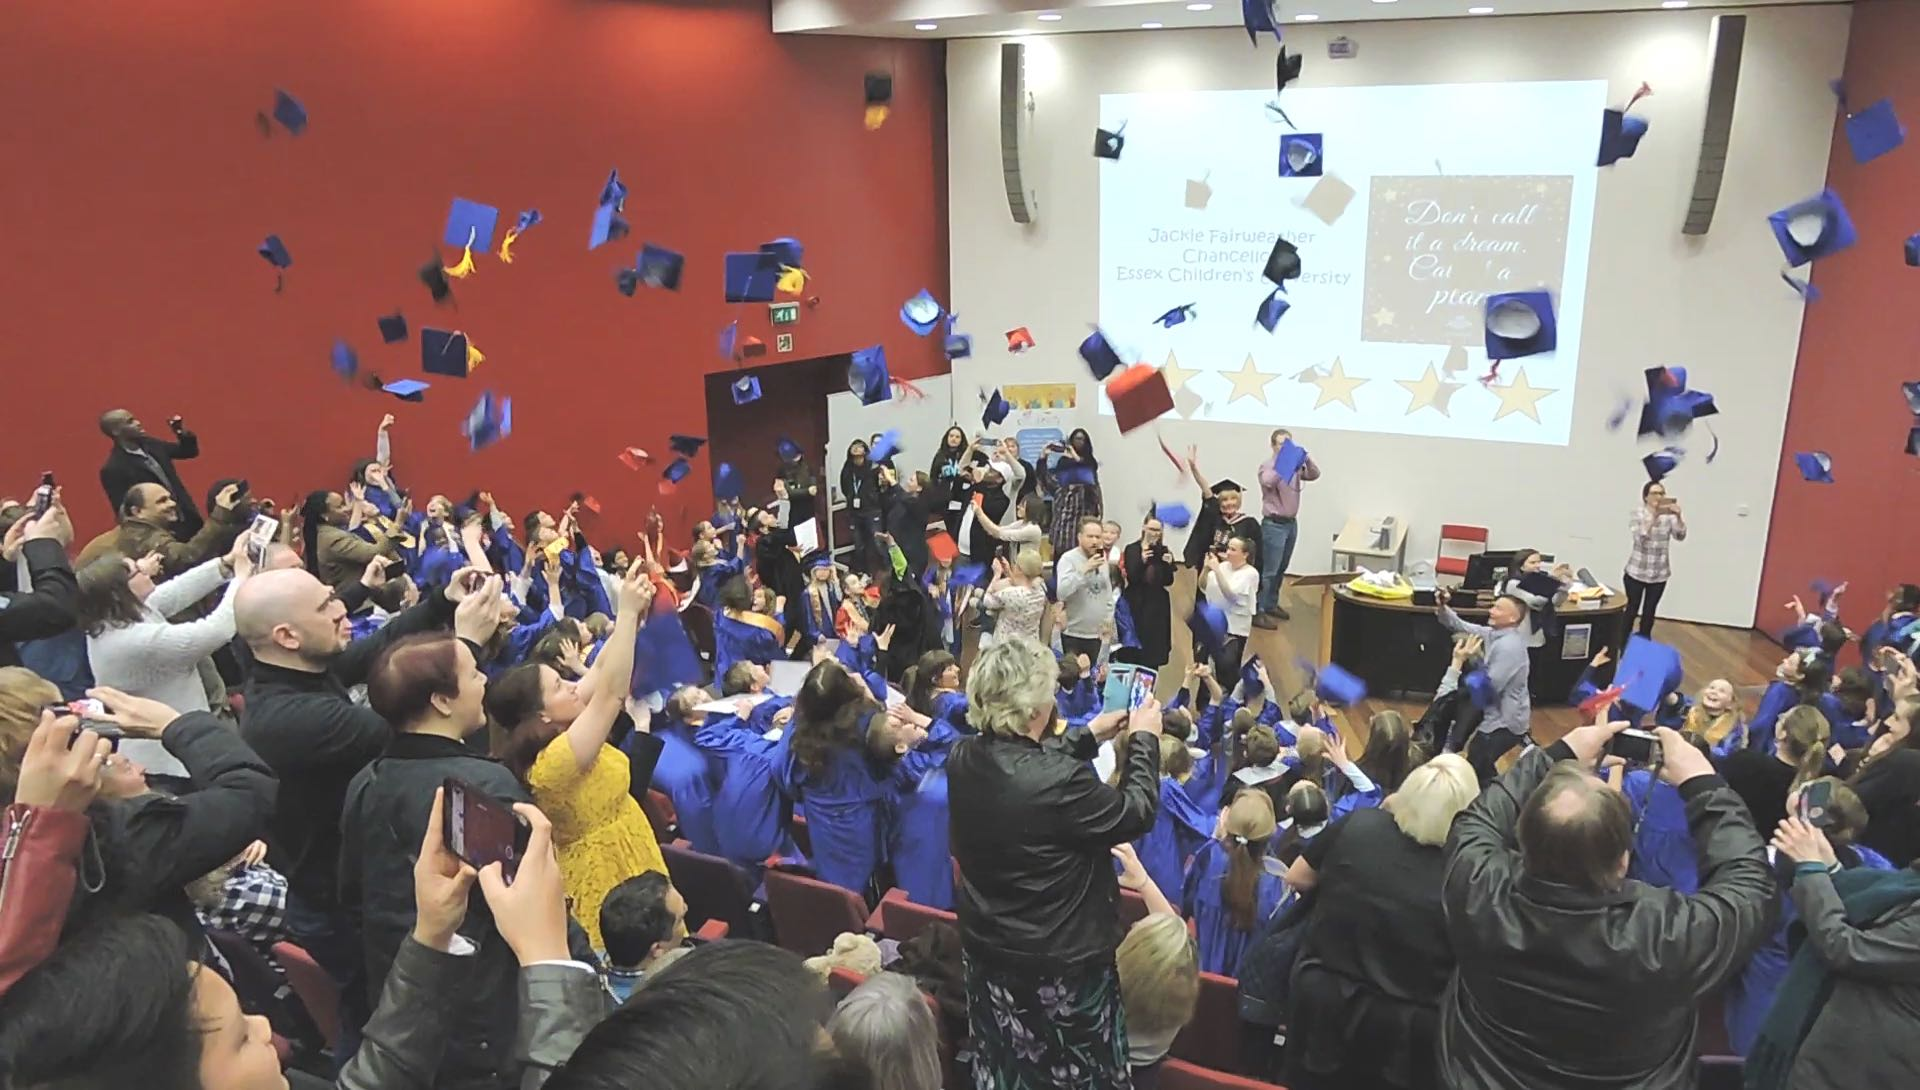 Hats off to Children's University Passport to Learning Programme